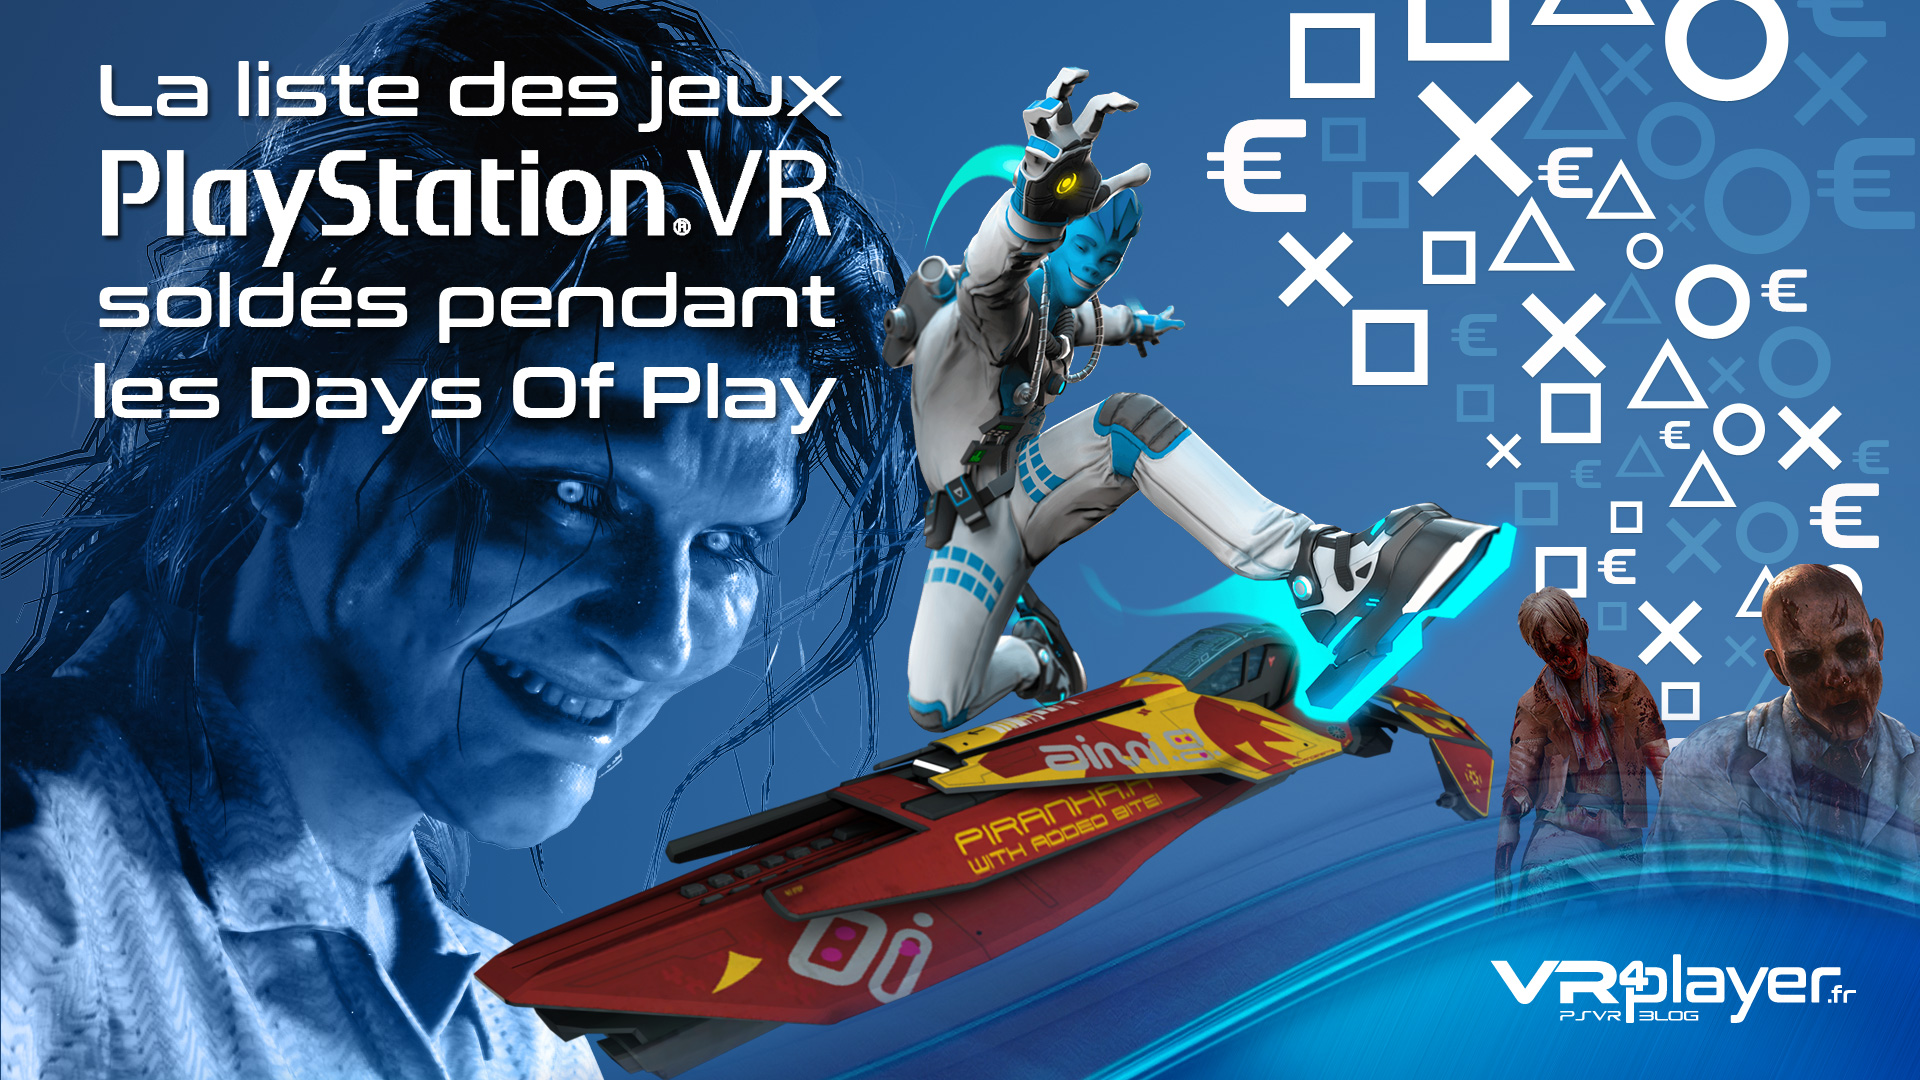 Days of Play liste des jeux PSVR soldés vr4player